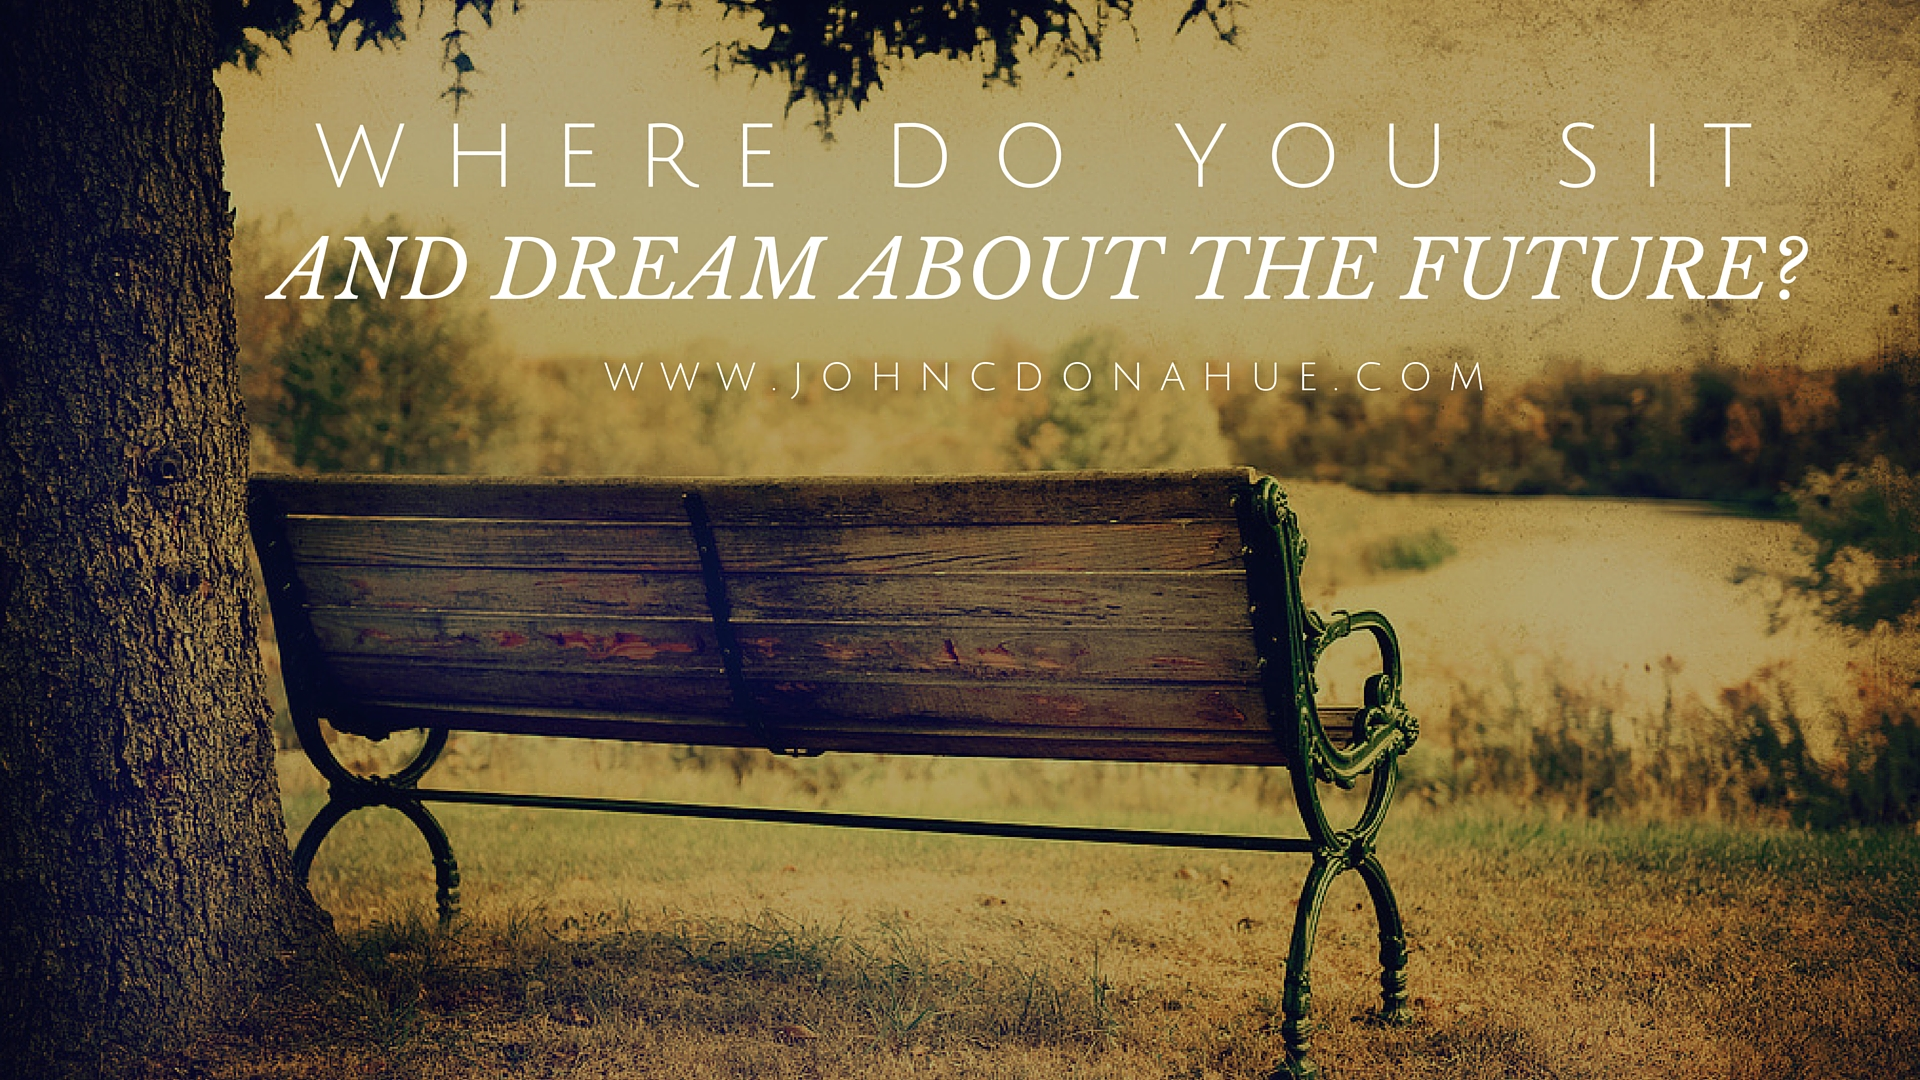 Where Do You Sit An Dream About The Future?